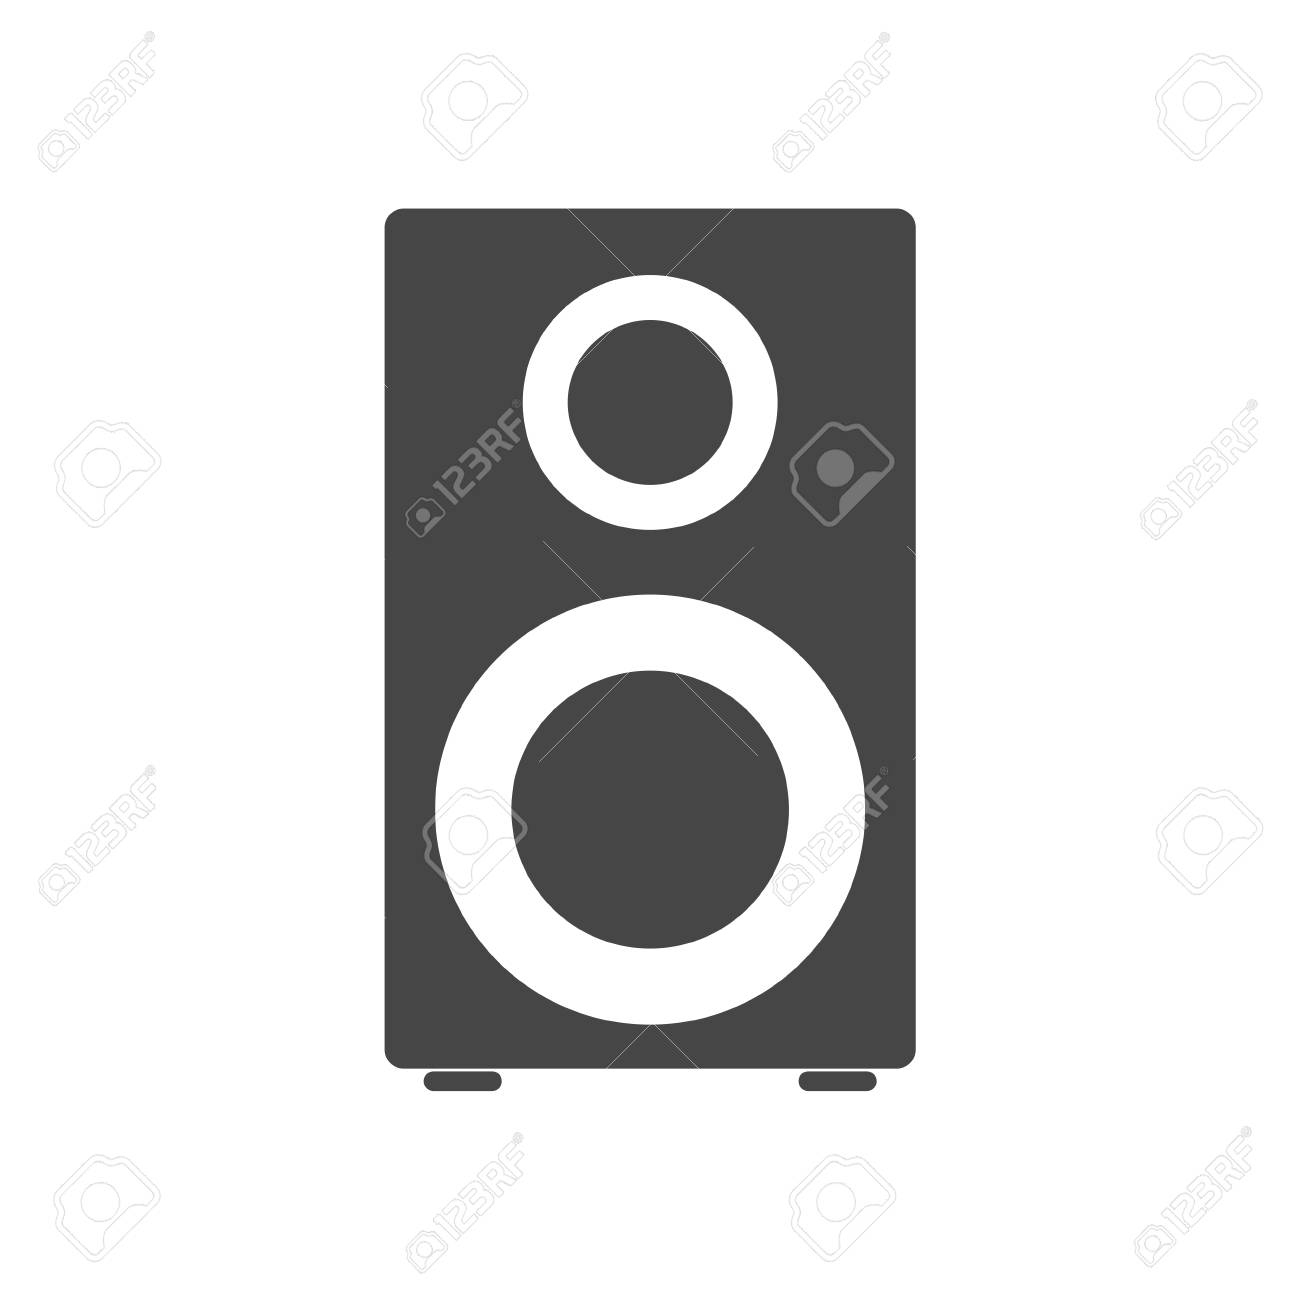 Speaker Icon Royalty Free Cliparts, Vectors, And Stock Illustration ...